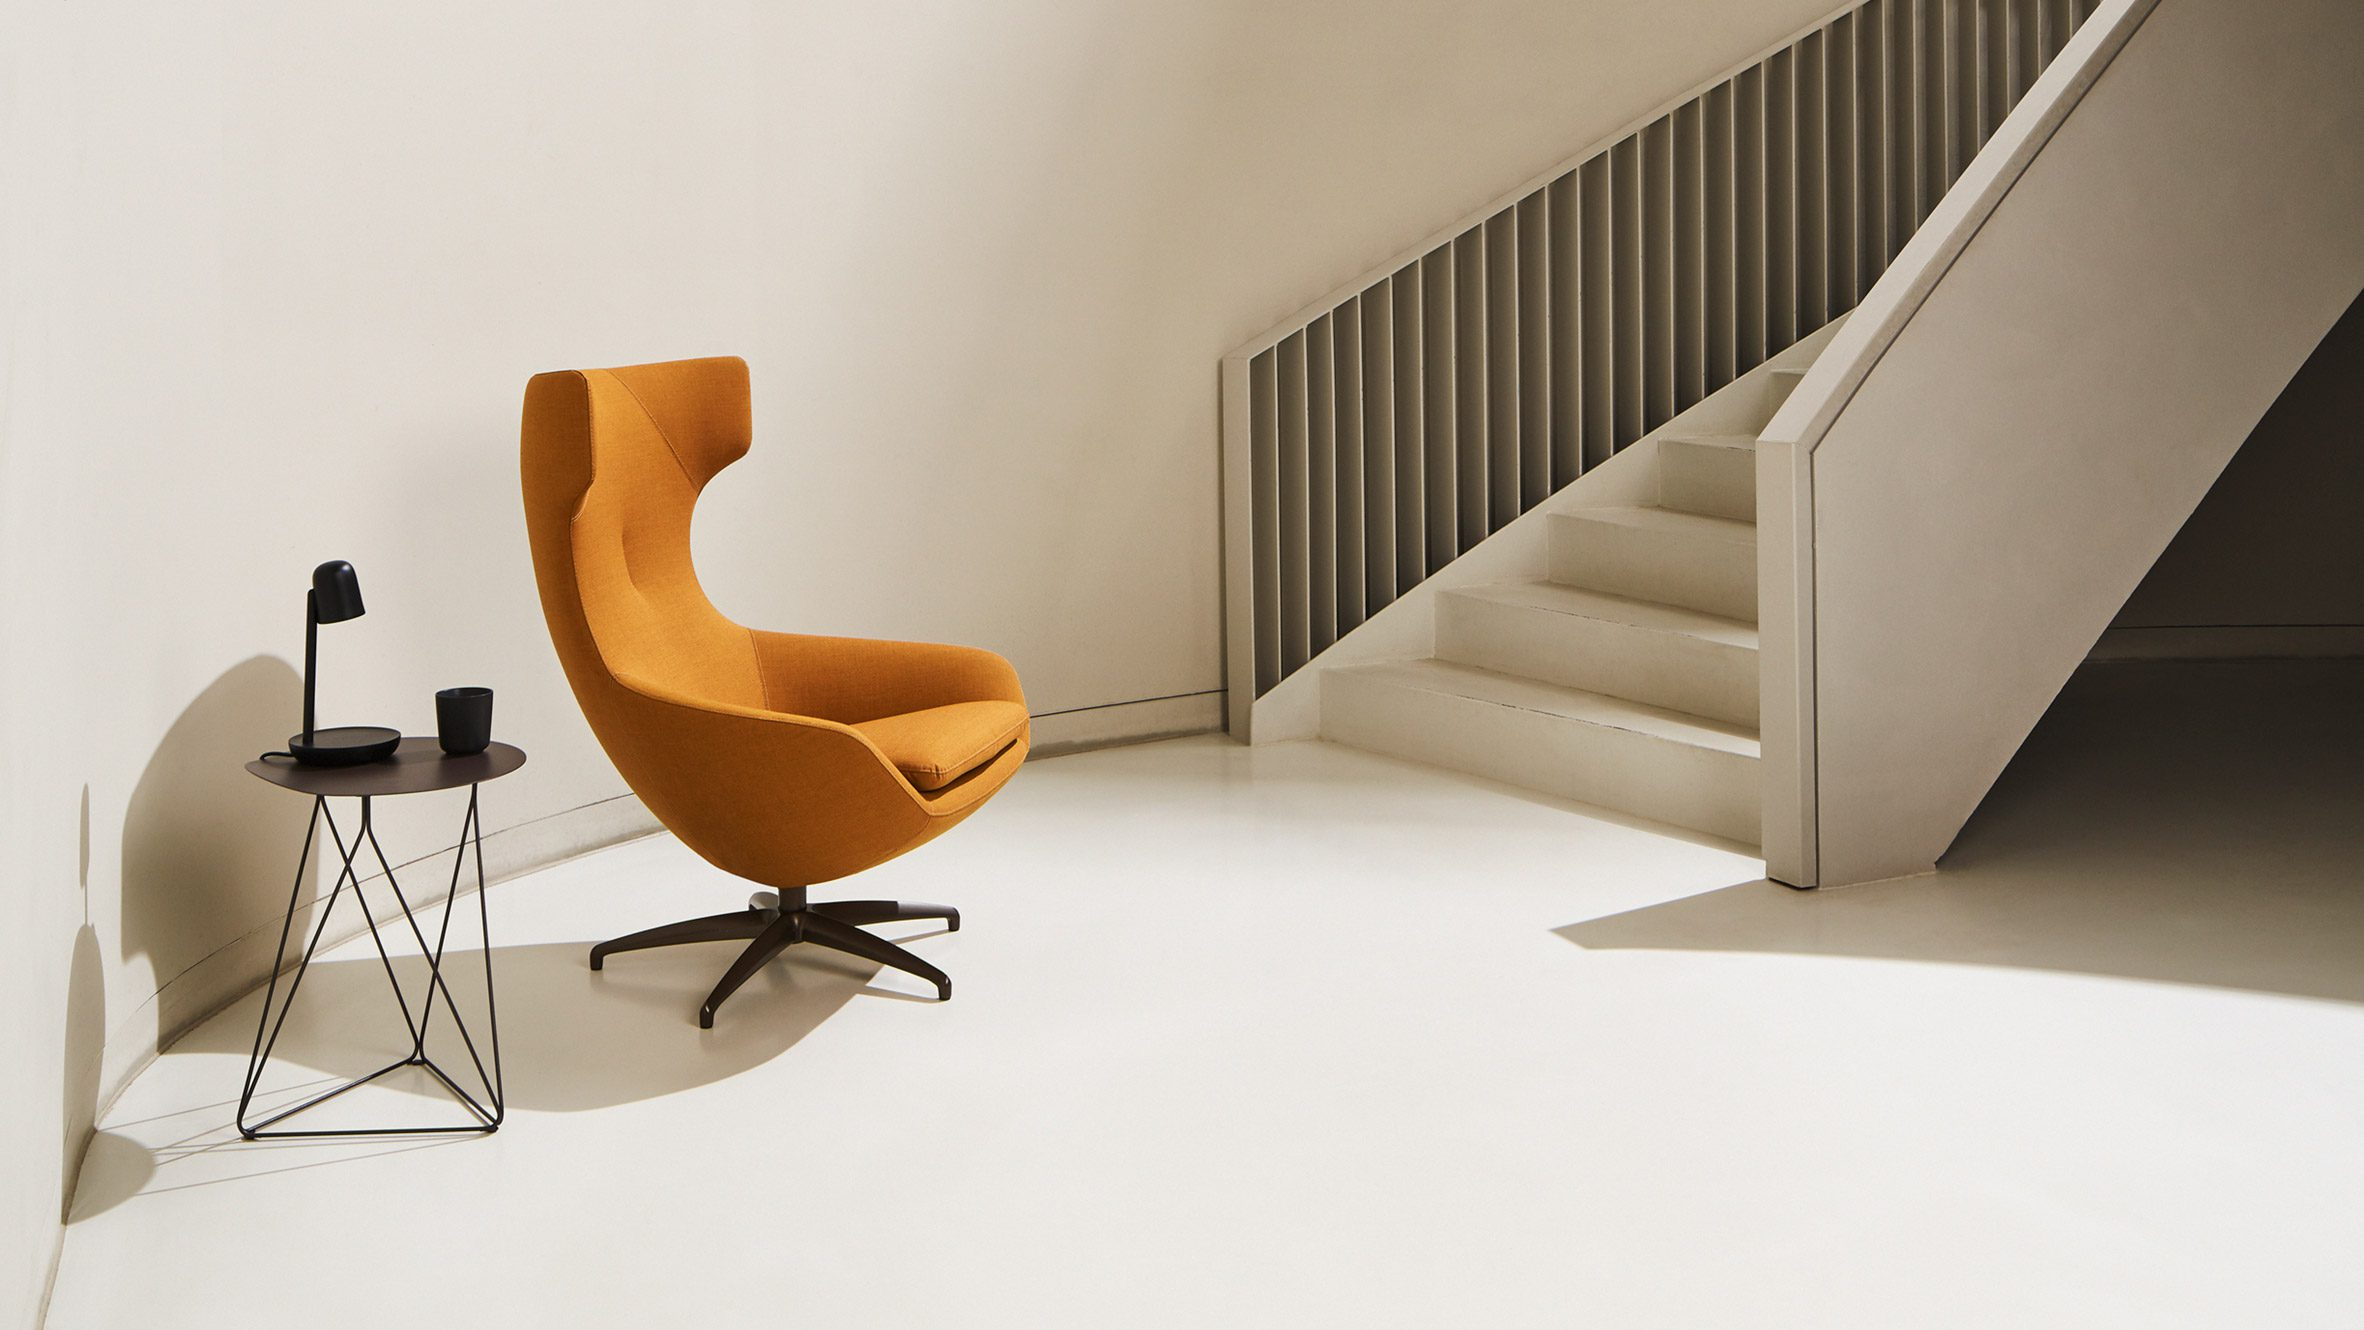 Bright orange LX662 armchair situated a neutral-coloured, pared-back room